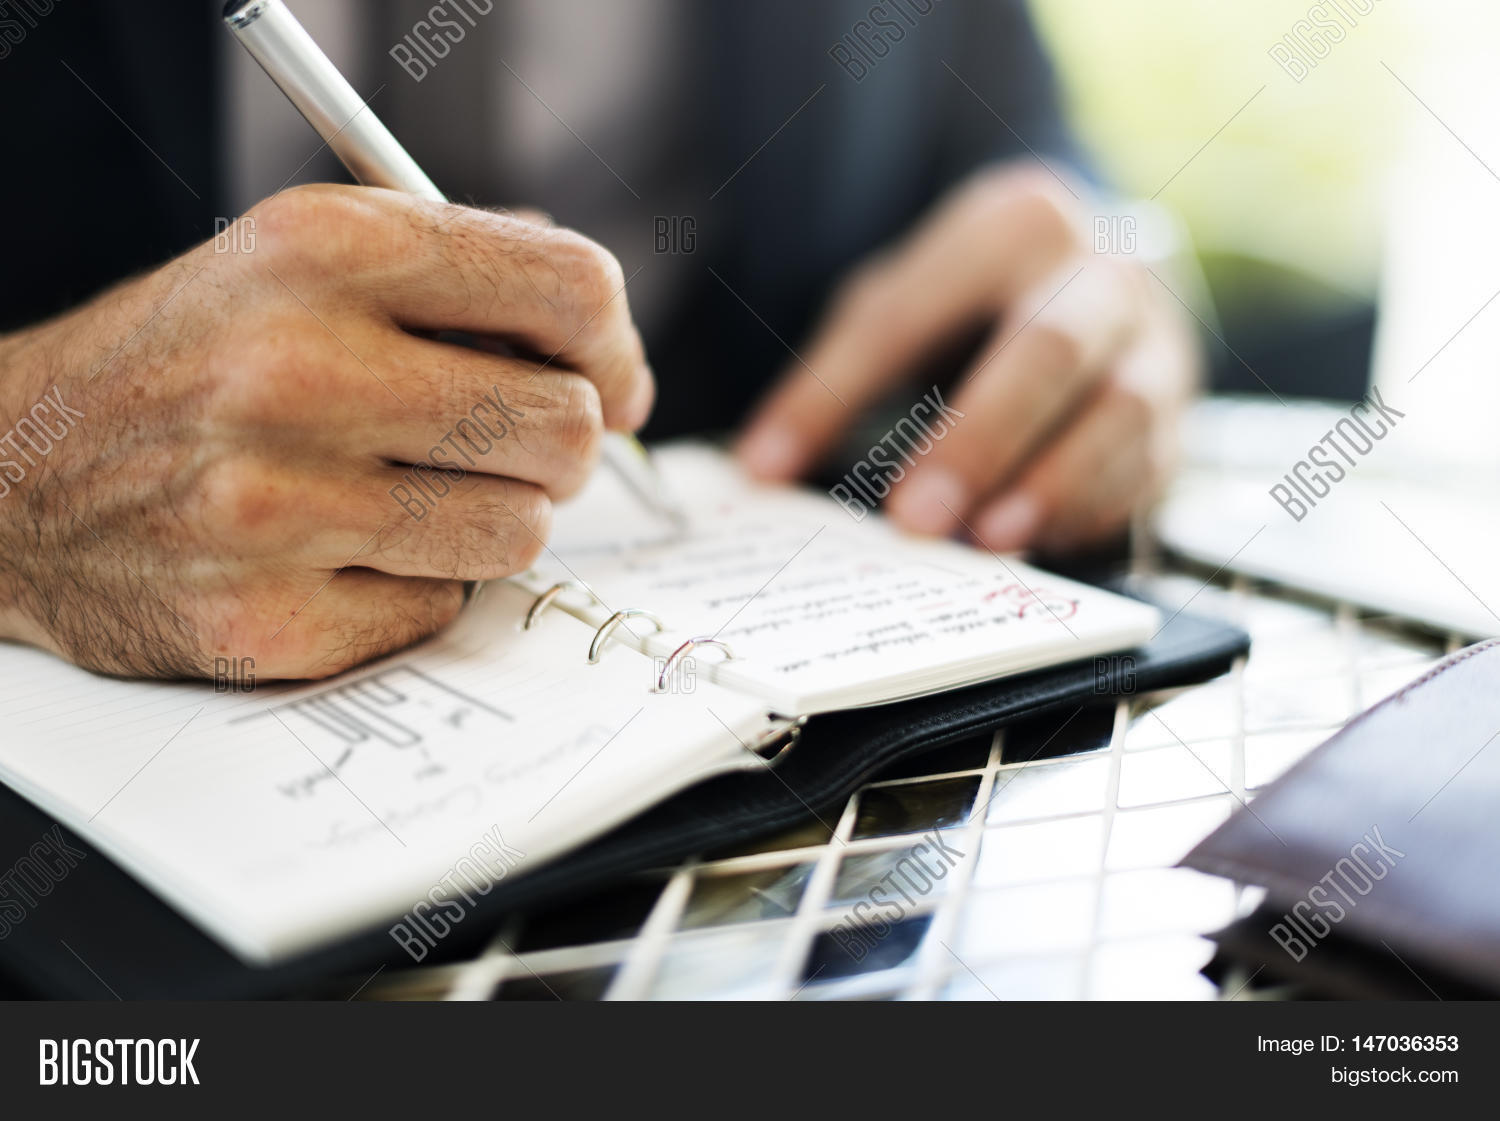 Writing Summary Analytics Information Business Meeting Concept  Stock Photo Writing Summary Analytics Information Business Meeting Concept